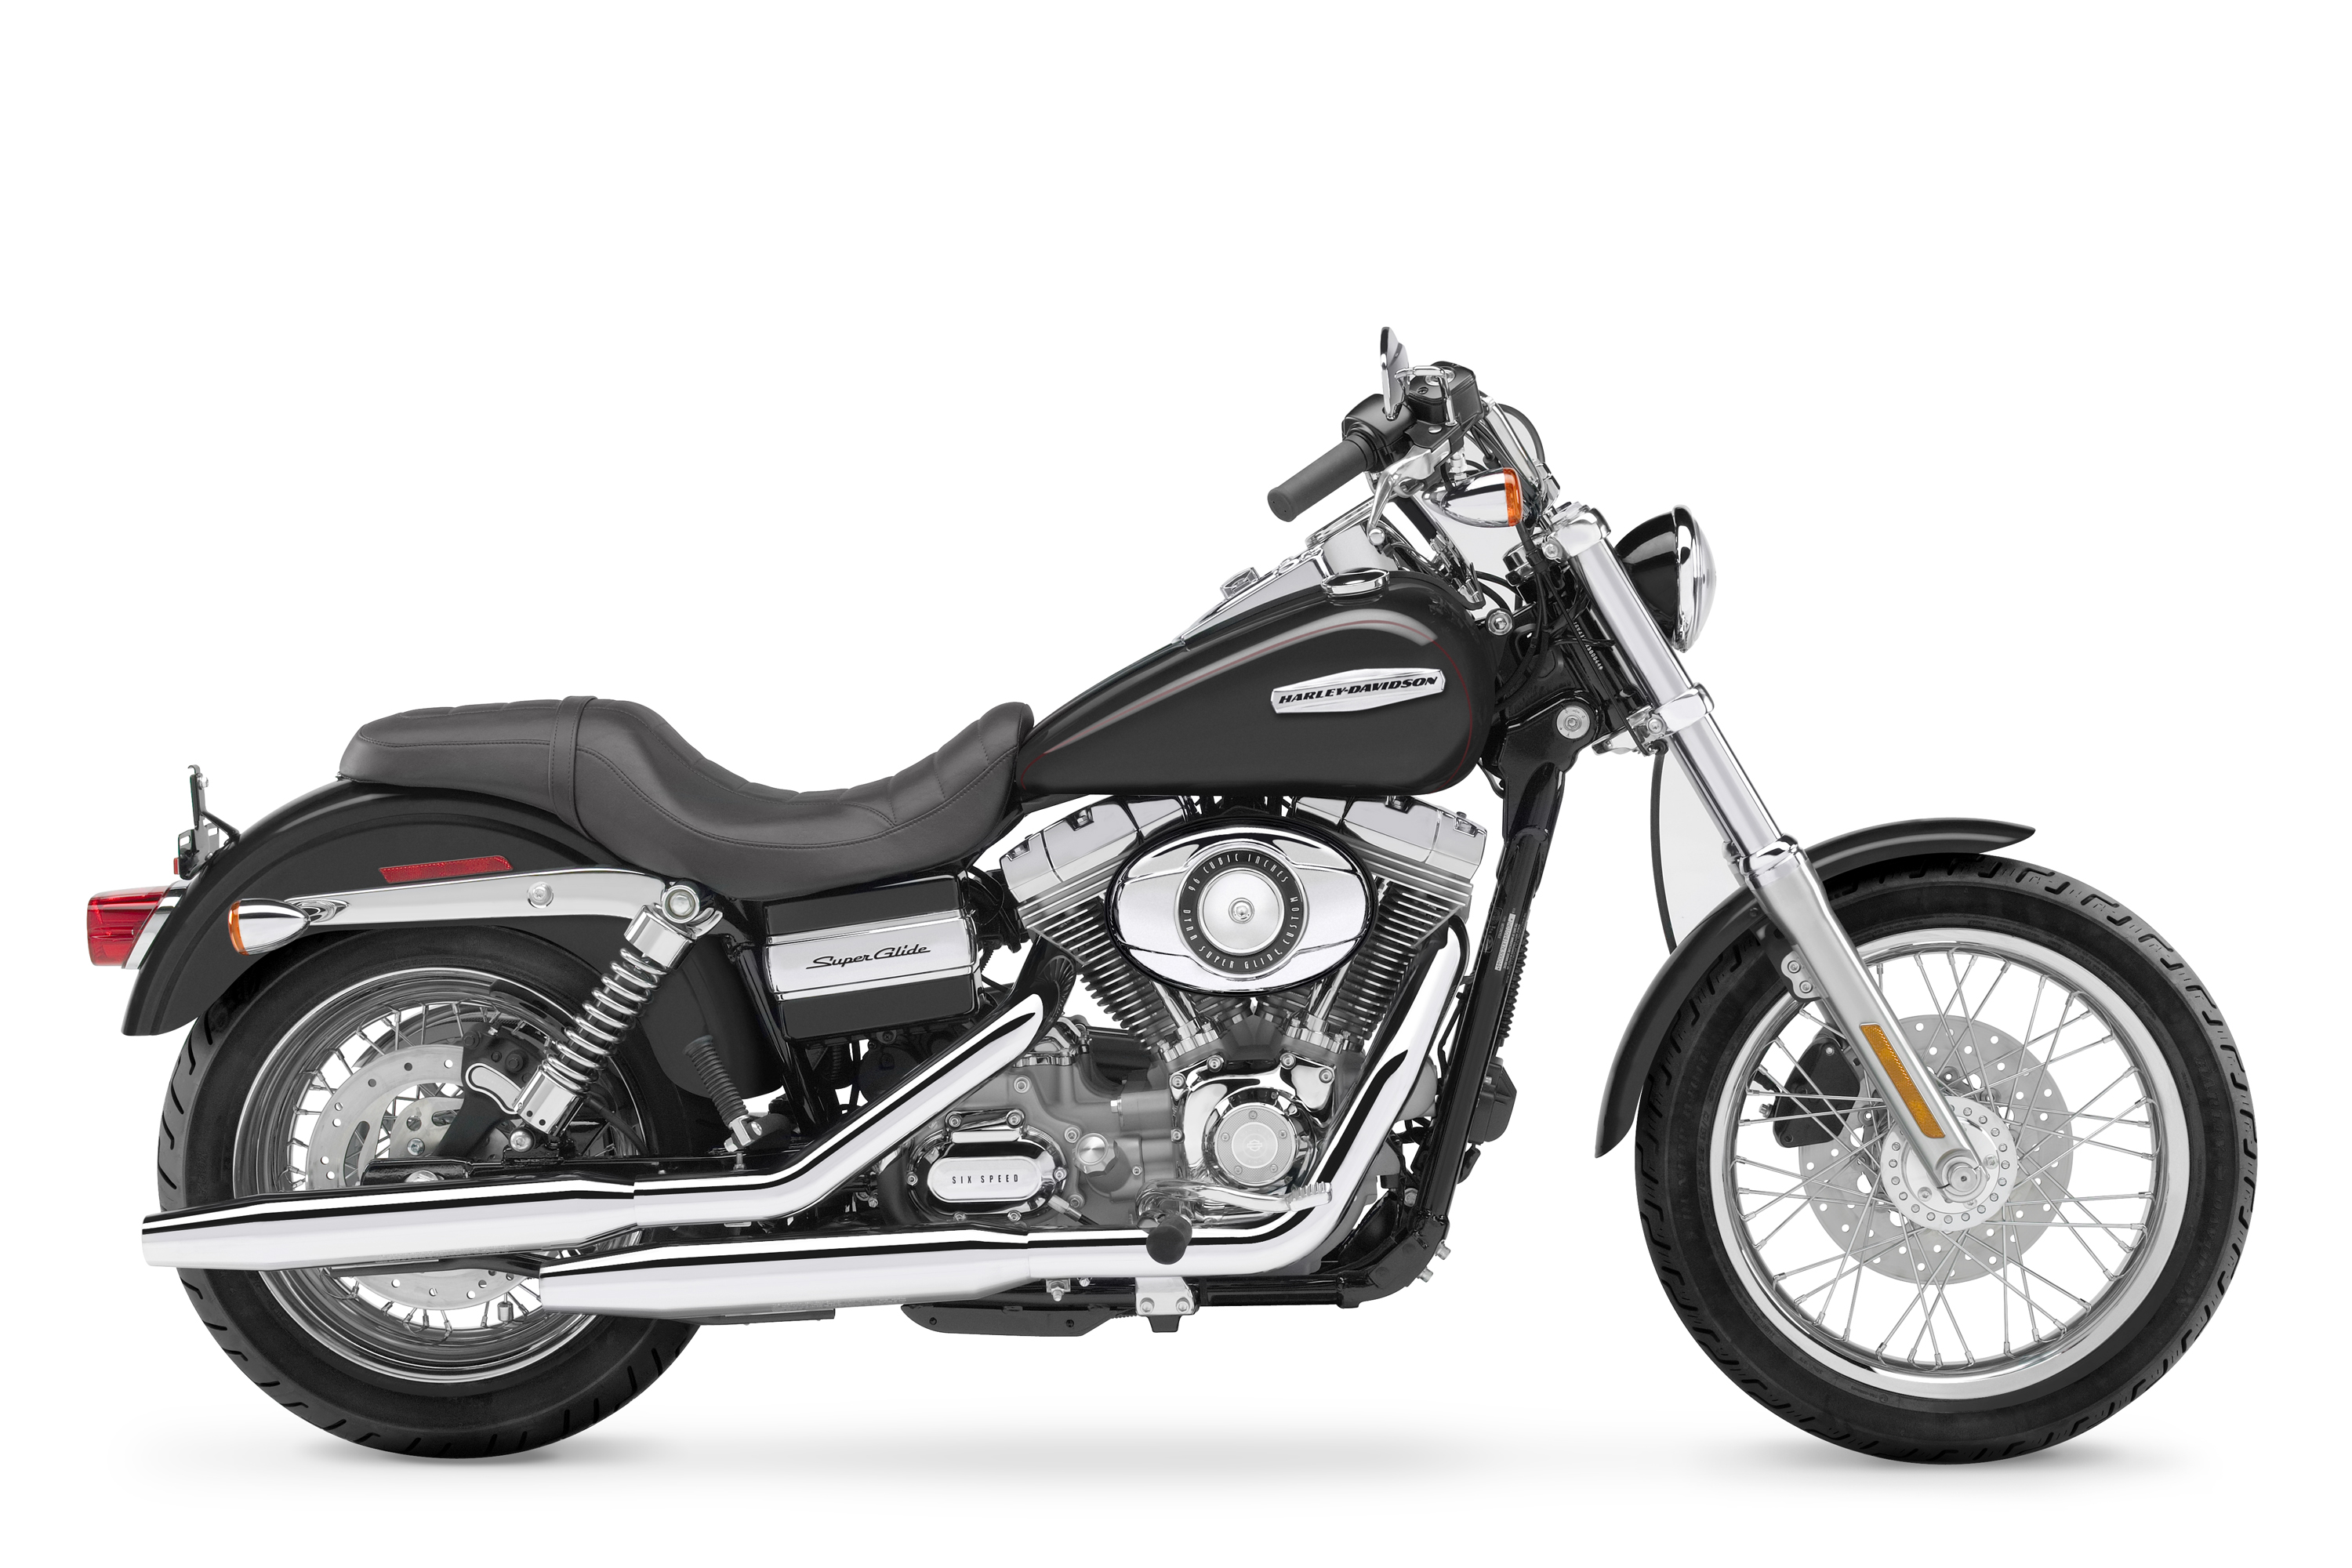 Fxdc Dyna Super Glide Custom 2011 Pictures: 2007 Harley-Davidson FXDC Dyna Super Glide Custom: Pics